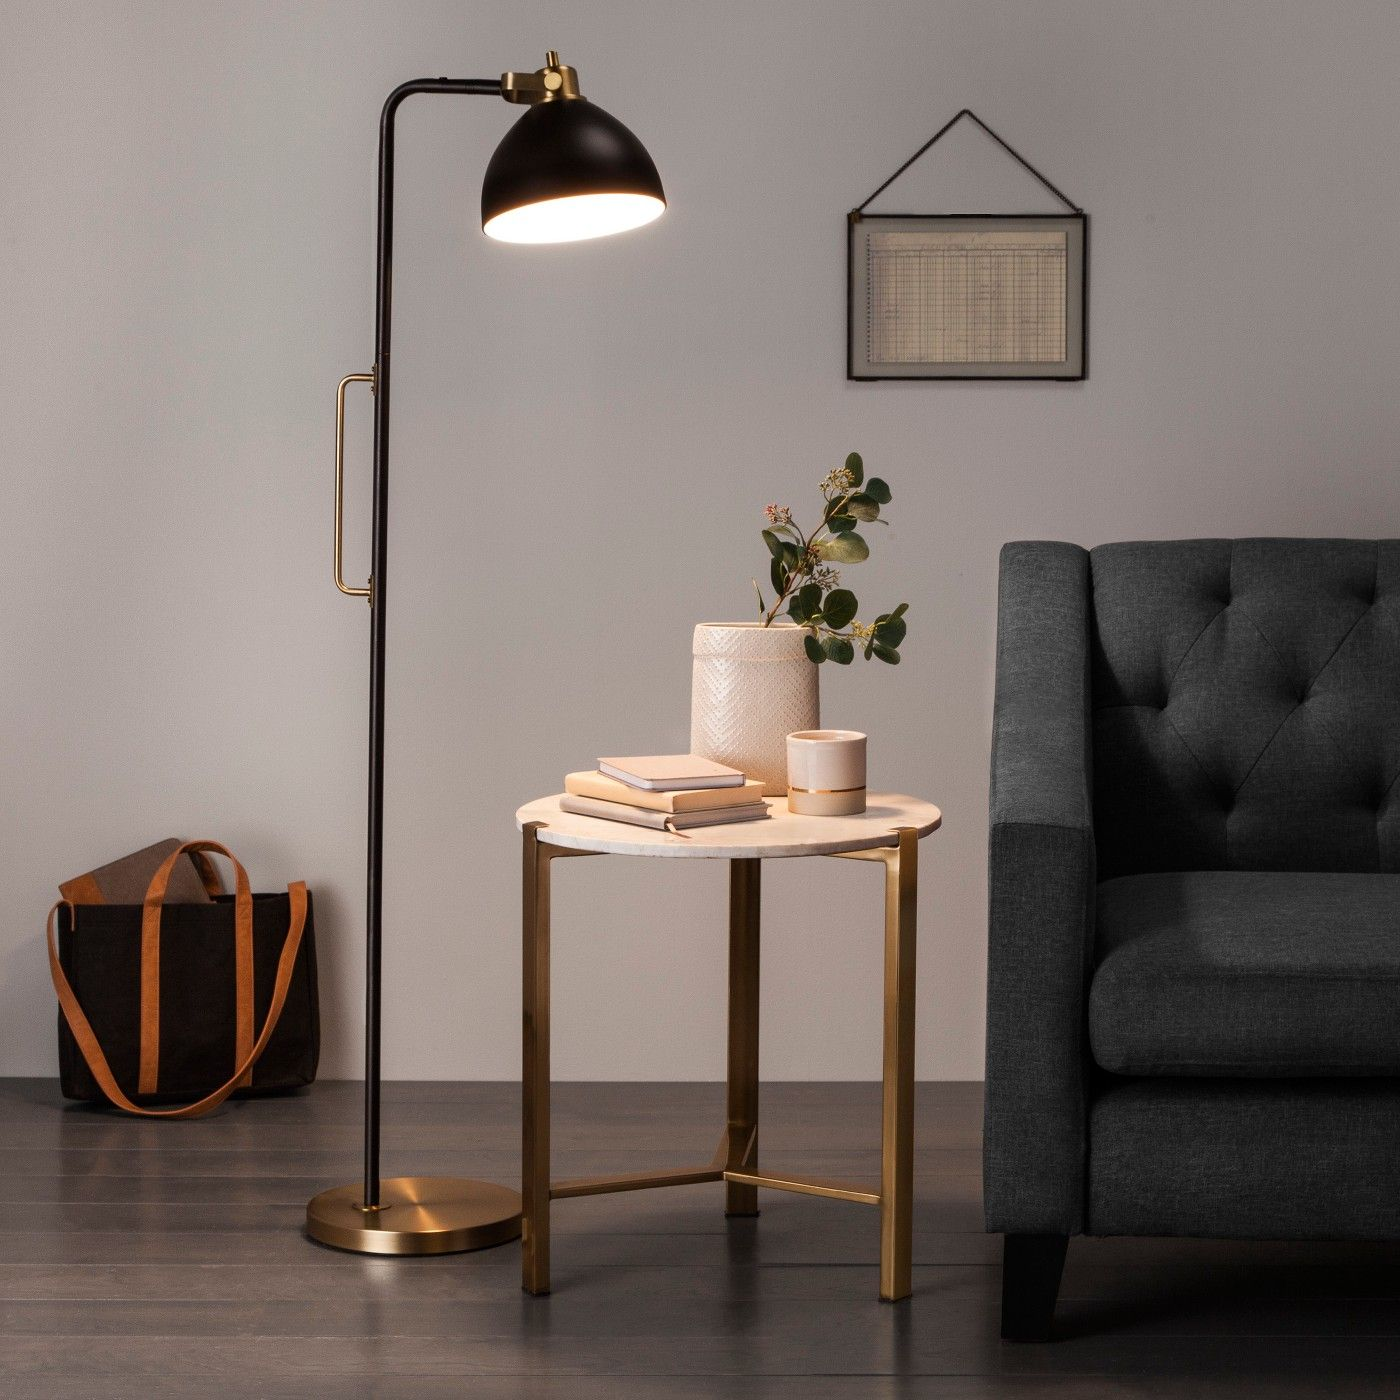 Black and brass handle floor lamp hearth hand with